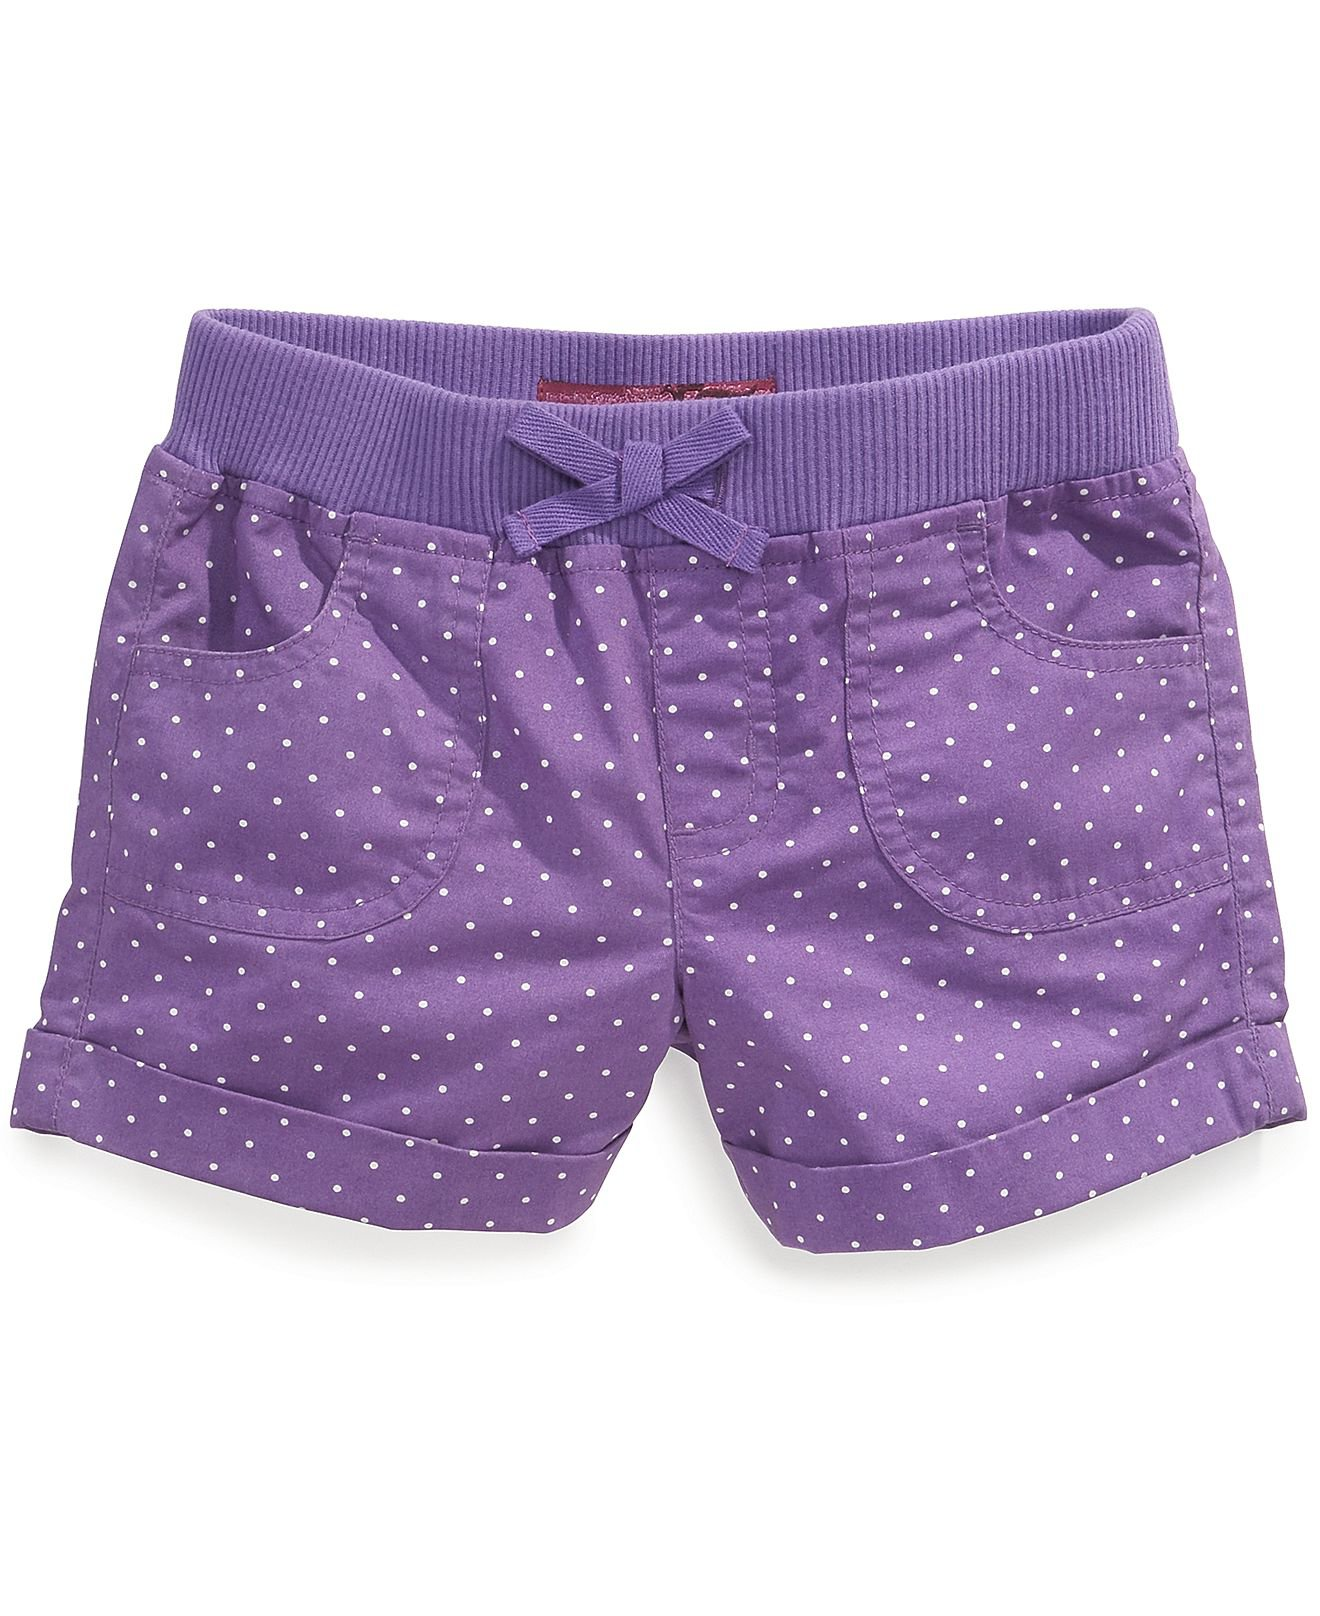 If it's a short kind of day, then you're going to need an easy pair of Tillys girls' high waisted shorts to make your day more fun. Add a bit of sway with Tillys girls ruffle shorts, girls flowy shorts or girls floral shorts.